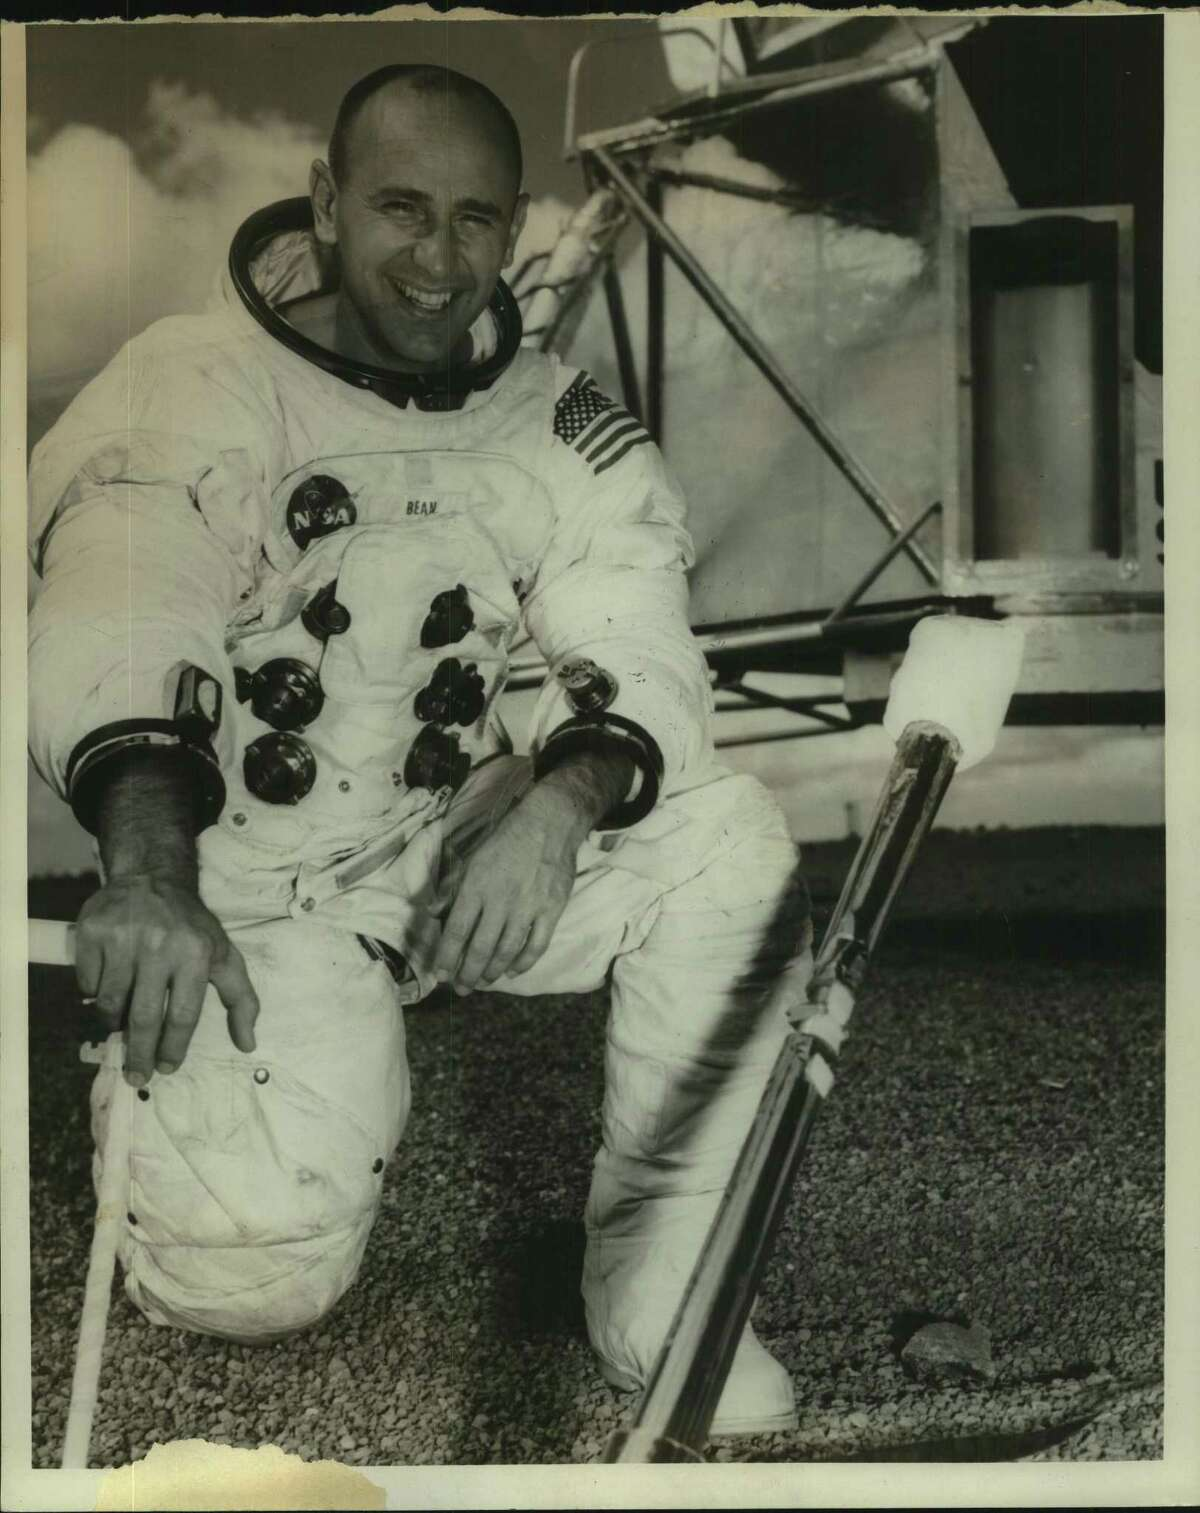 A 1973 Press Photo Astronaut Alan Bean. Bean, 86, died on Saturday, May 26, 2018 at Houston Methodist Hospital in Houston. His death followed his suddenly falling ill while on travel in Fort Wayne, Indiana two weeks before.